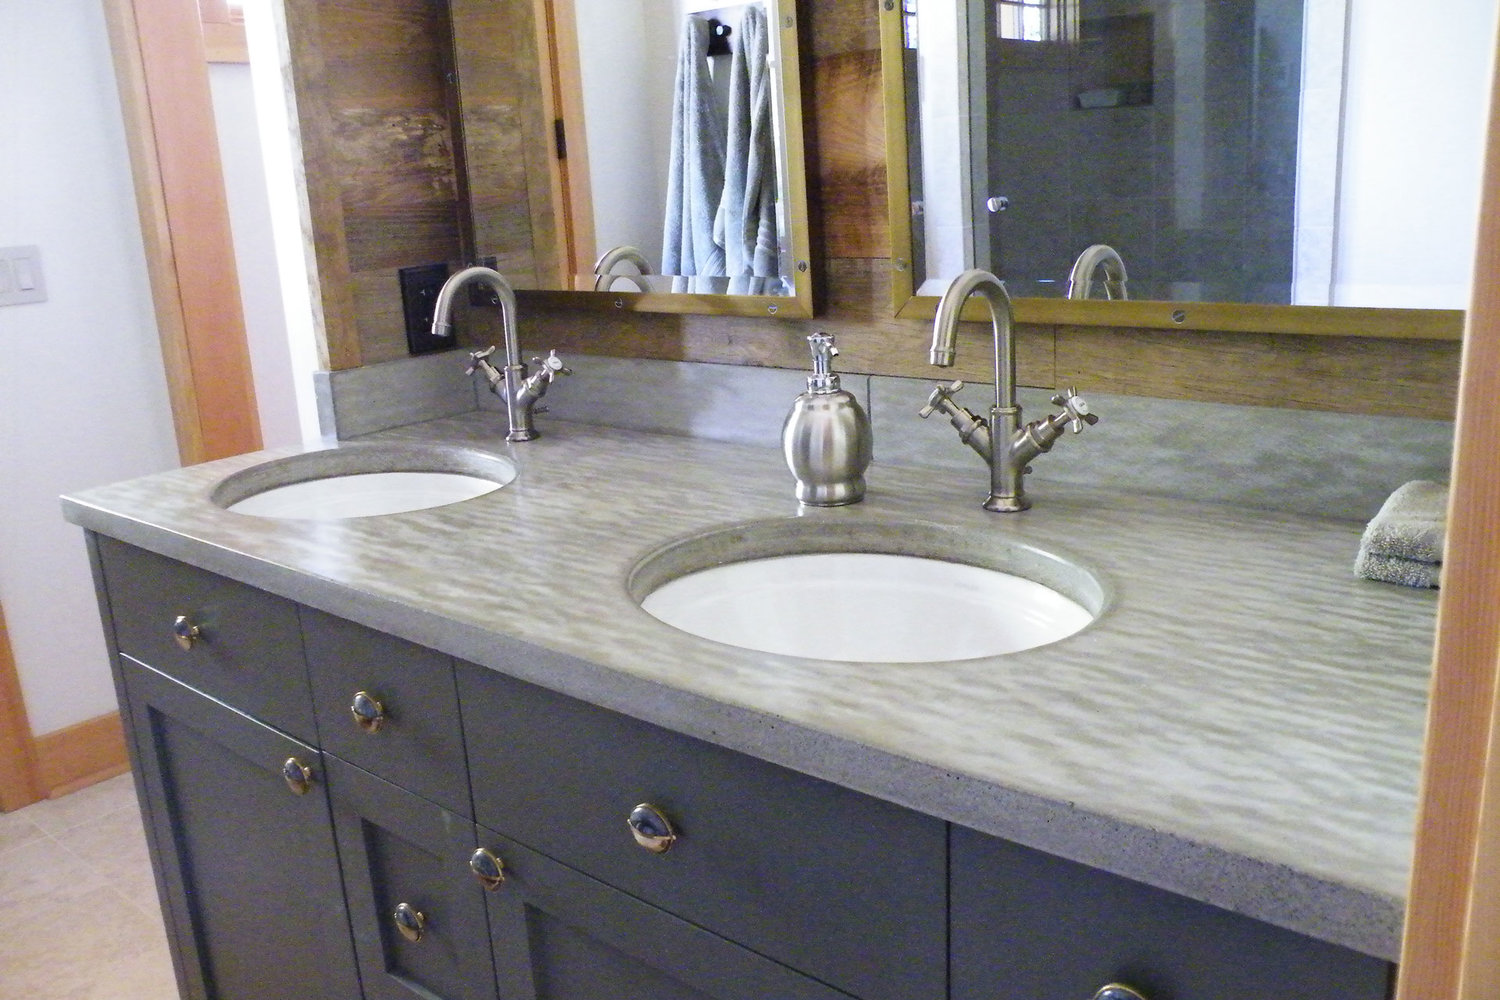 bathroom sinks & vanities — hadrian stone design